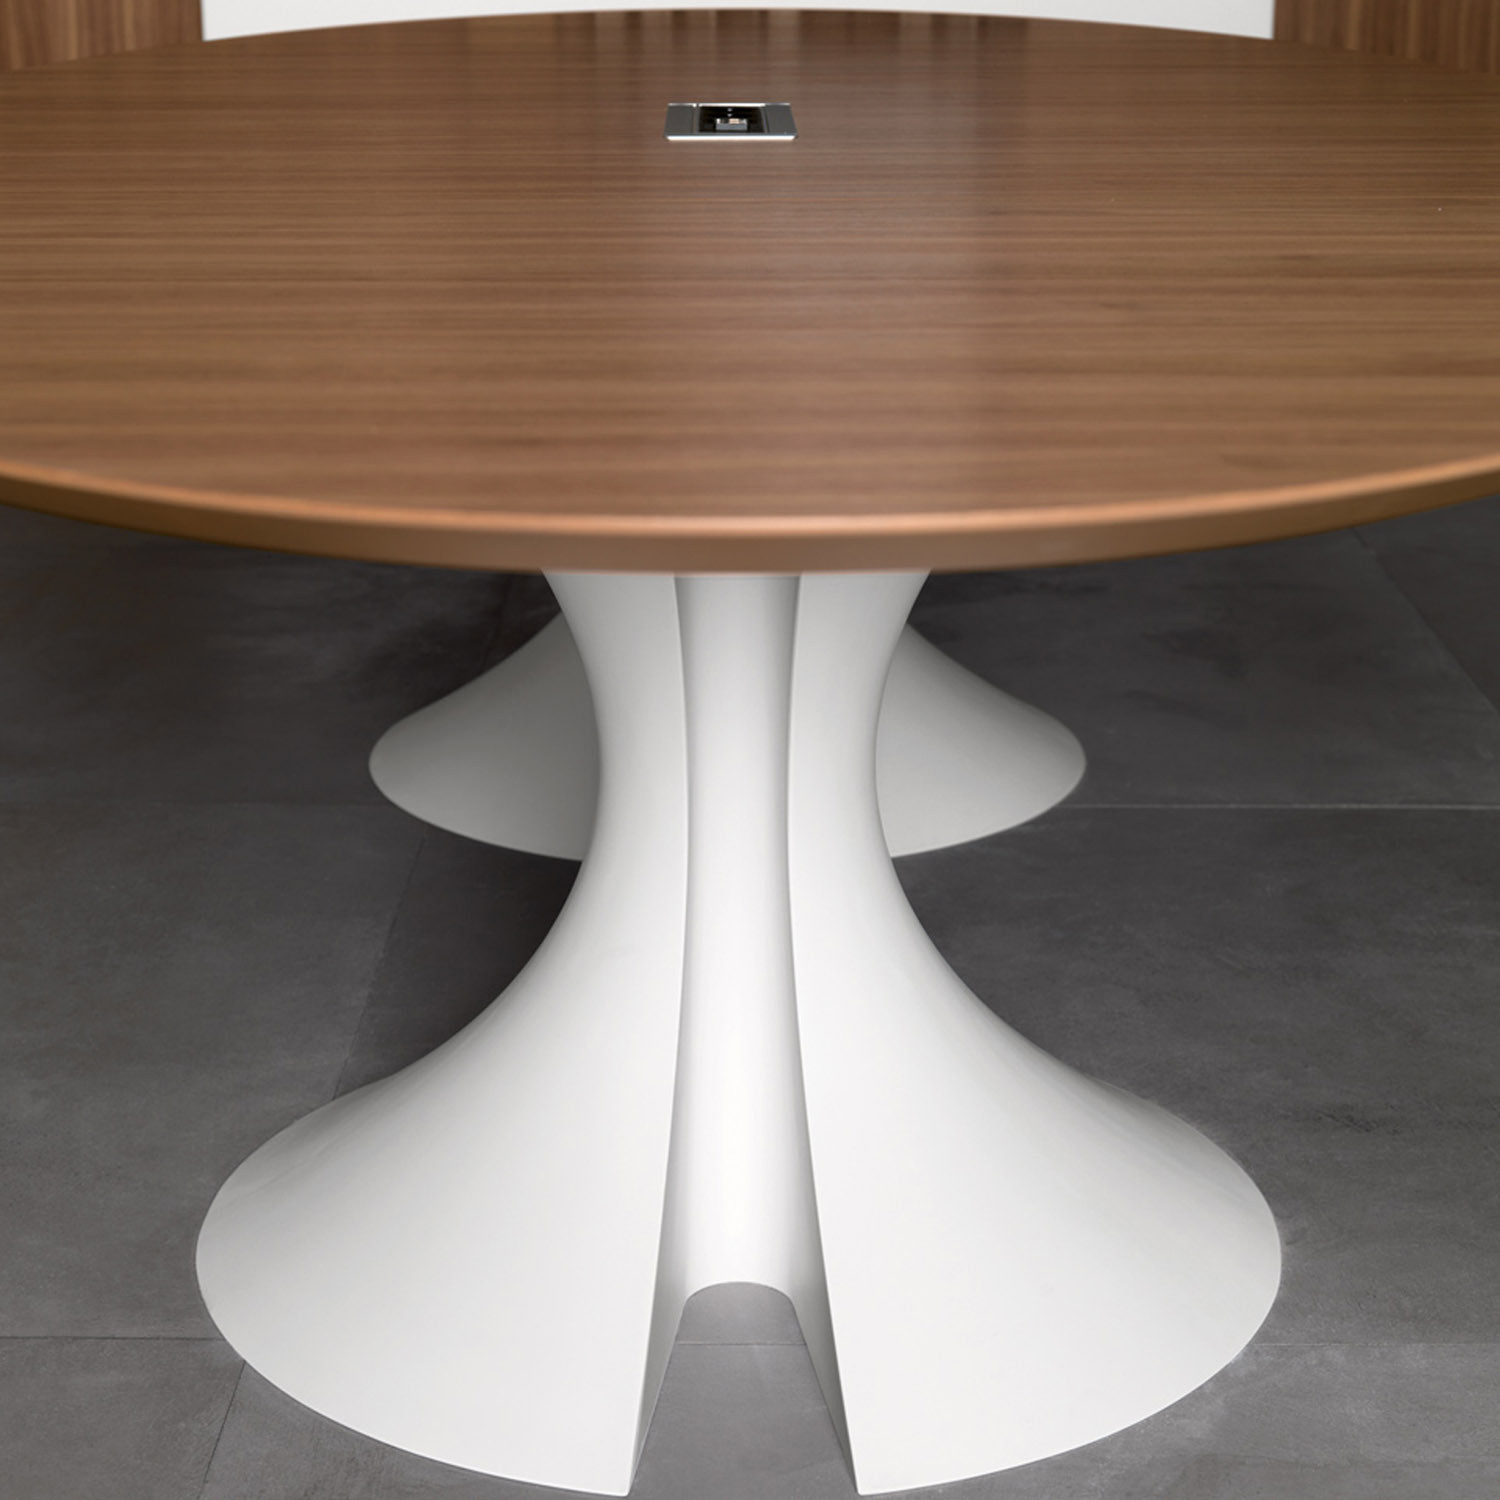 Ola Meeting Table is available in a wide range of finishes